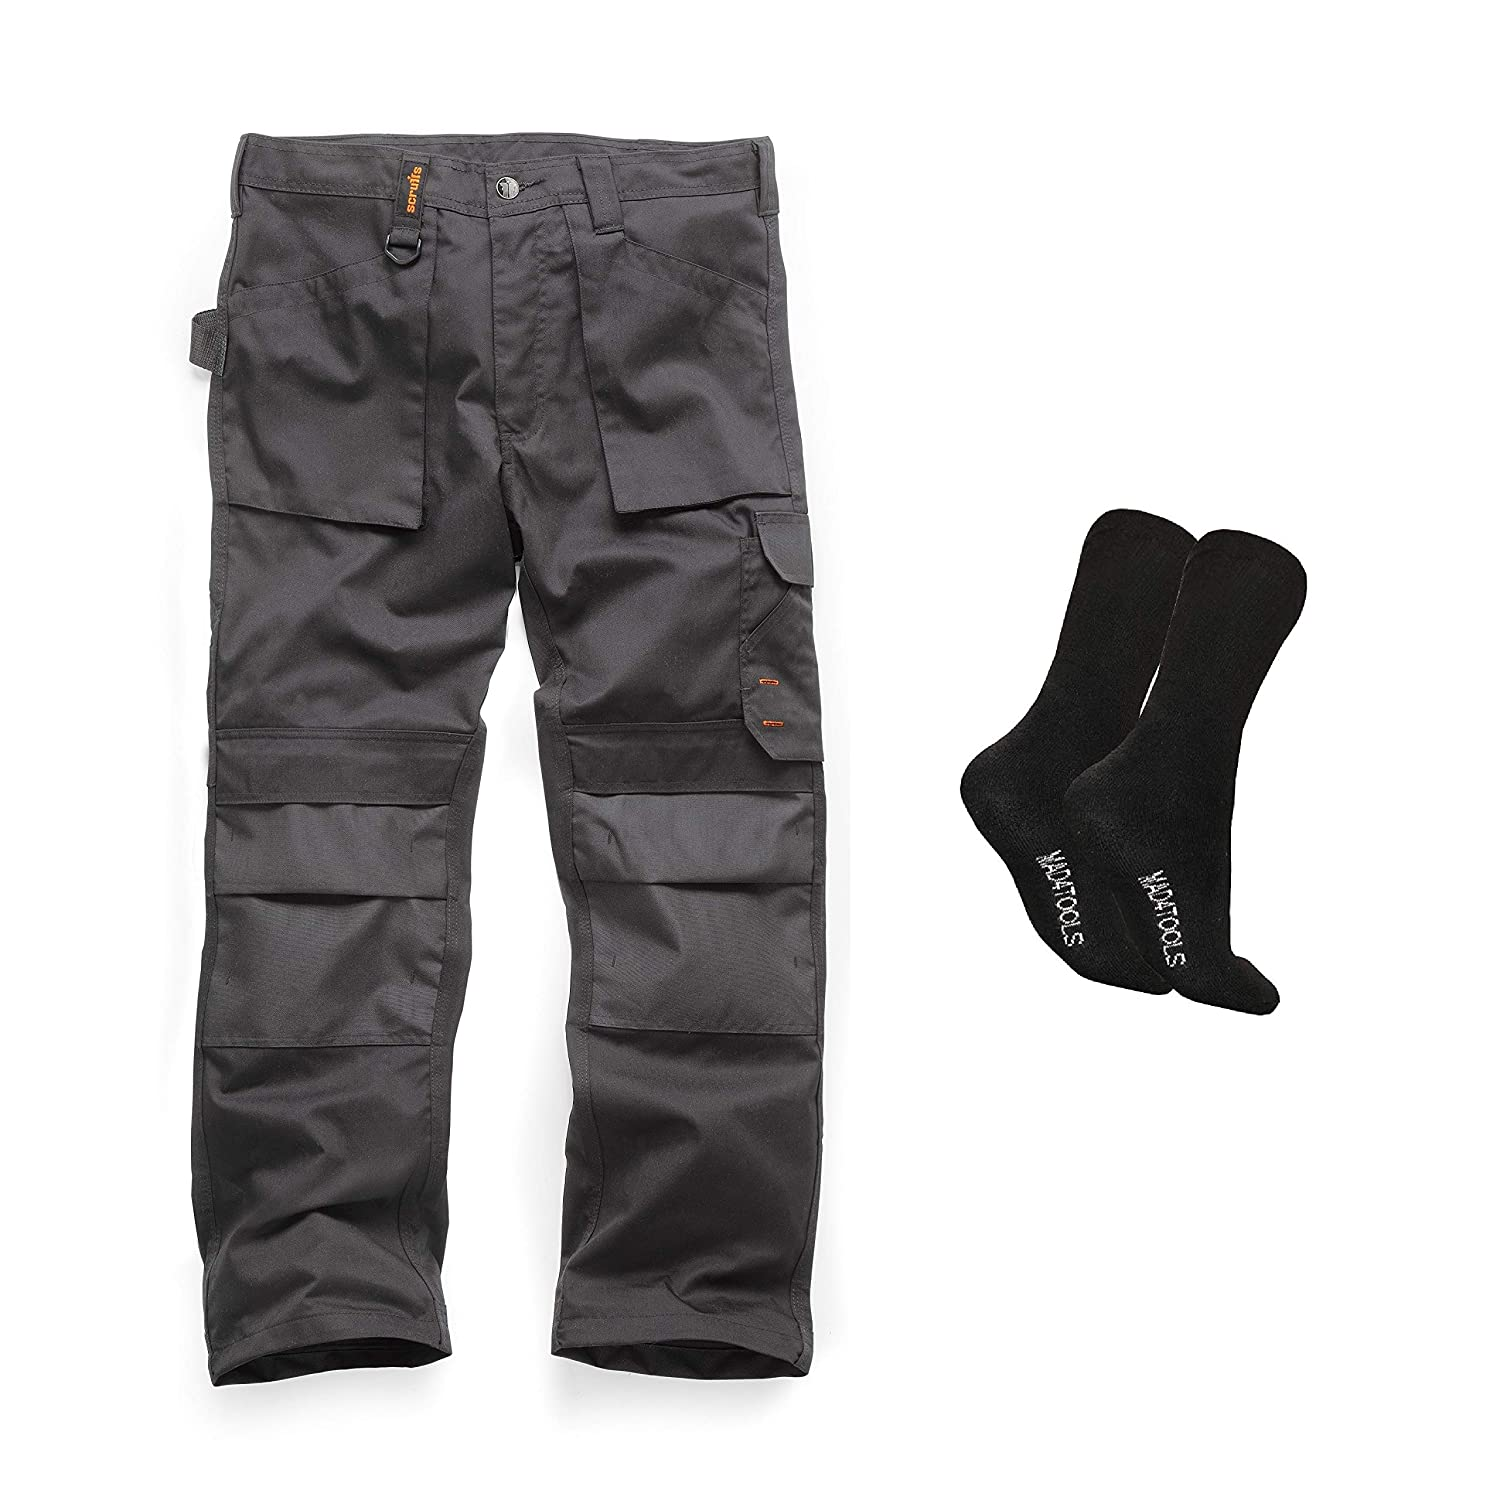 Scruffs Ripstop Twin Pack Trade Hardwearing Work Trousers with Multiple /& Knee Pad Pockets Black Various Sizes, Short, Regular and Long Leg